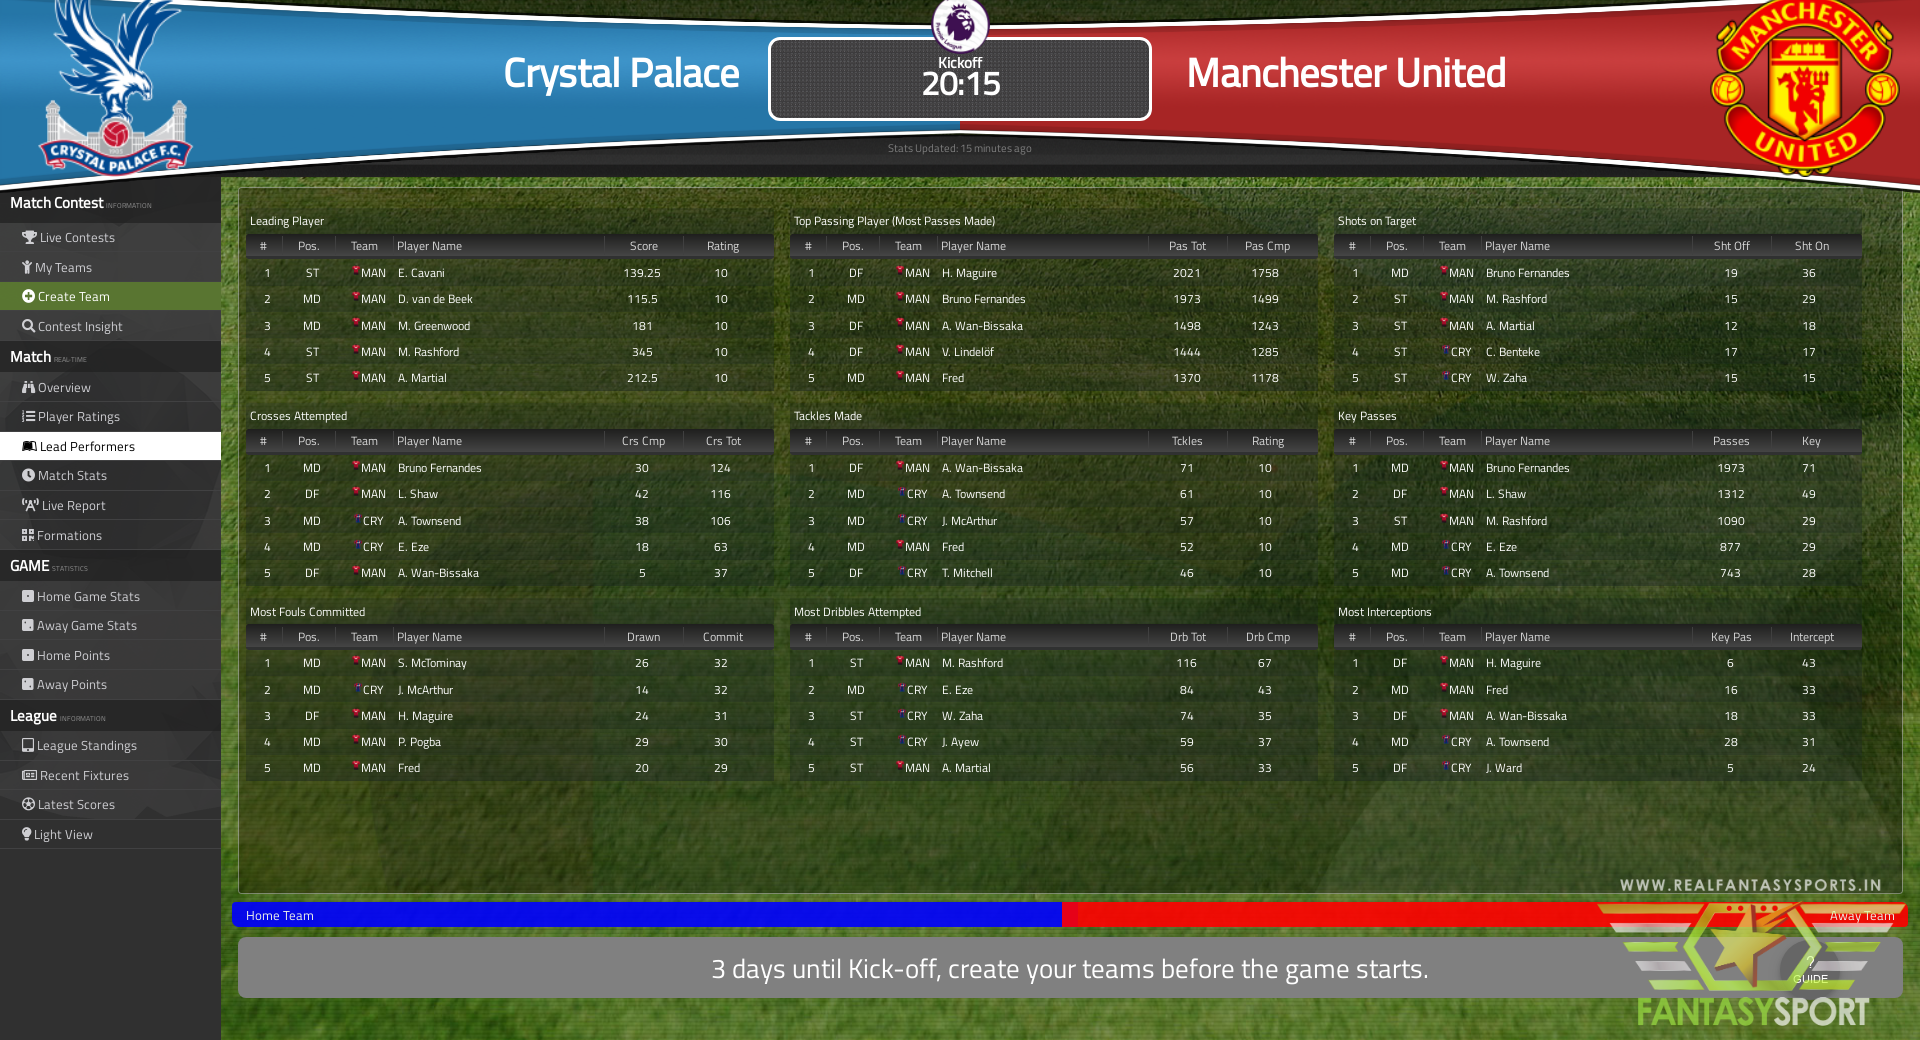 Crystal Palace vs Manchester United match prediction (3rd March 2021)